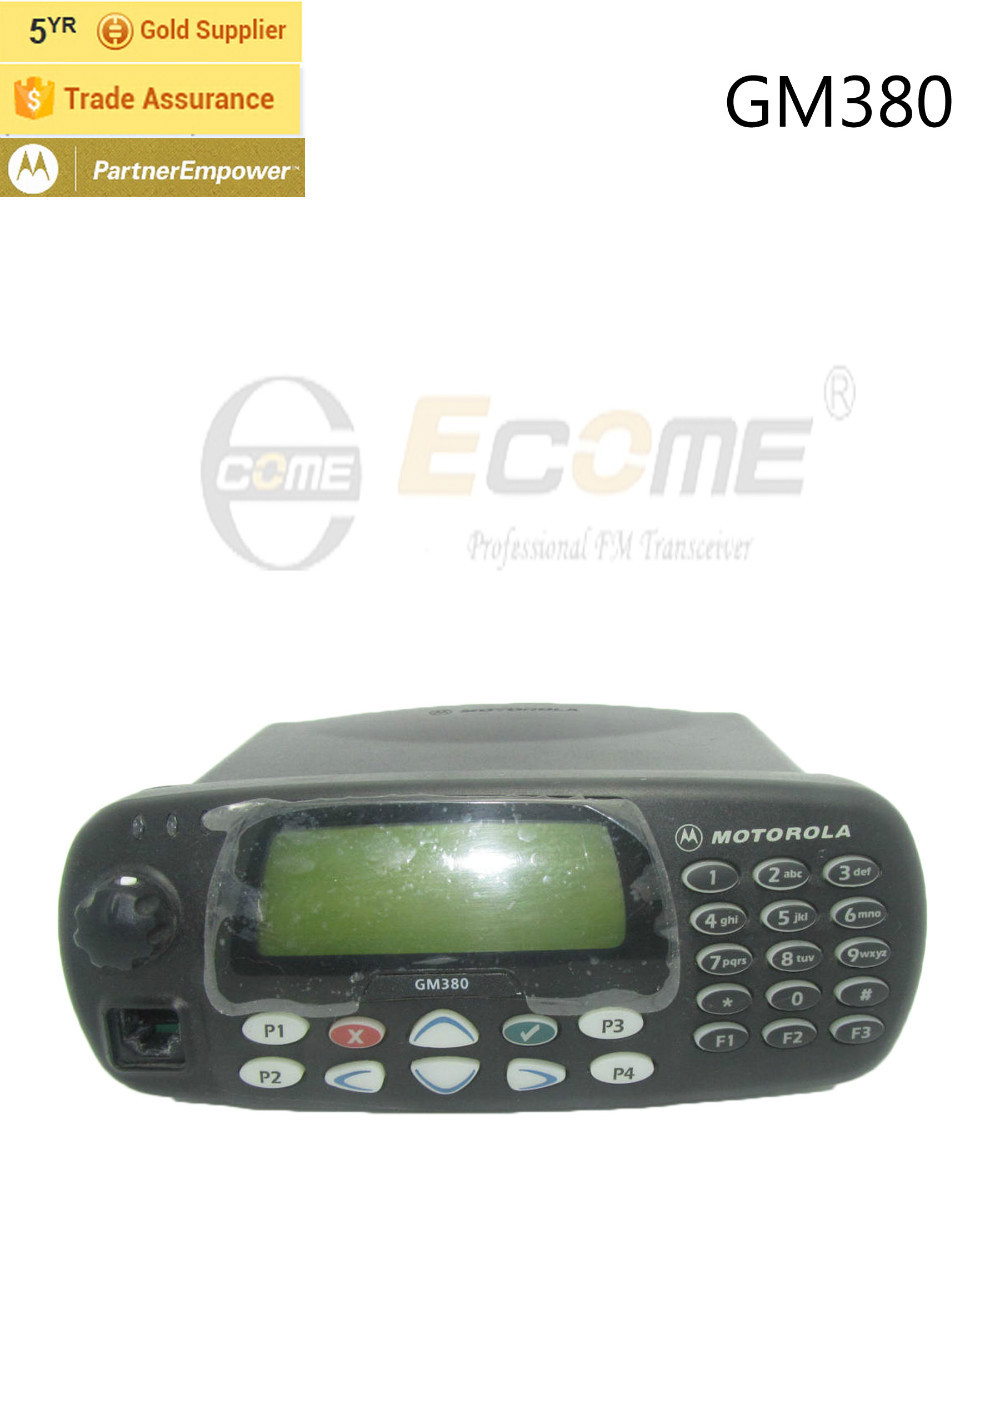 255 CH Dual Band Vehicle Mouted Radio Motorola GM380(China (Mainland))